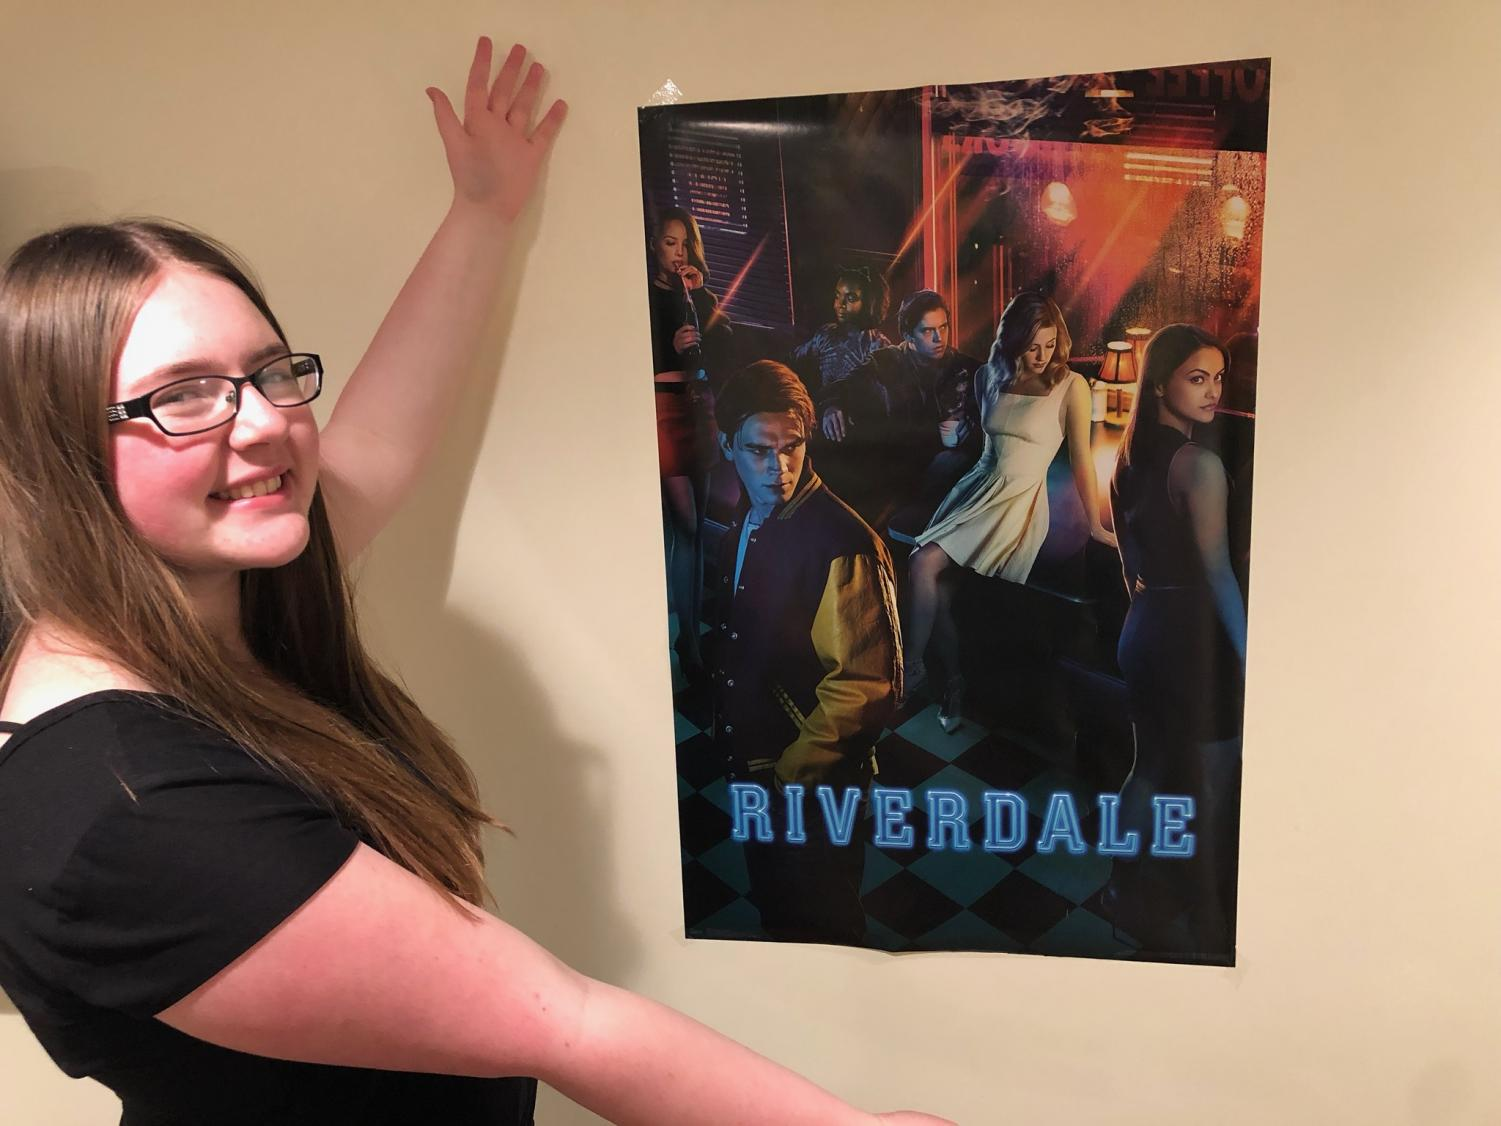 Our Riverdale Reviewer poses before one of her favorite posters of one of her favorite shows.